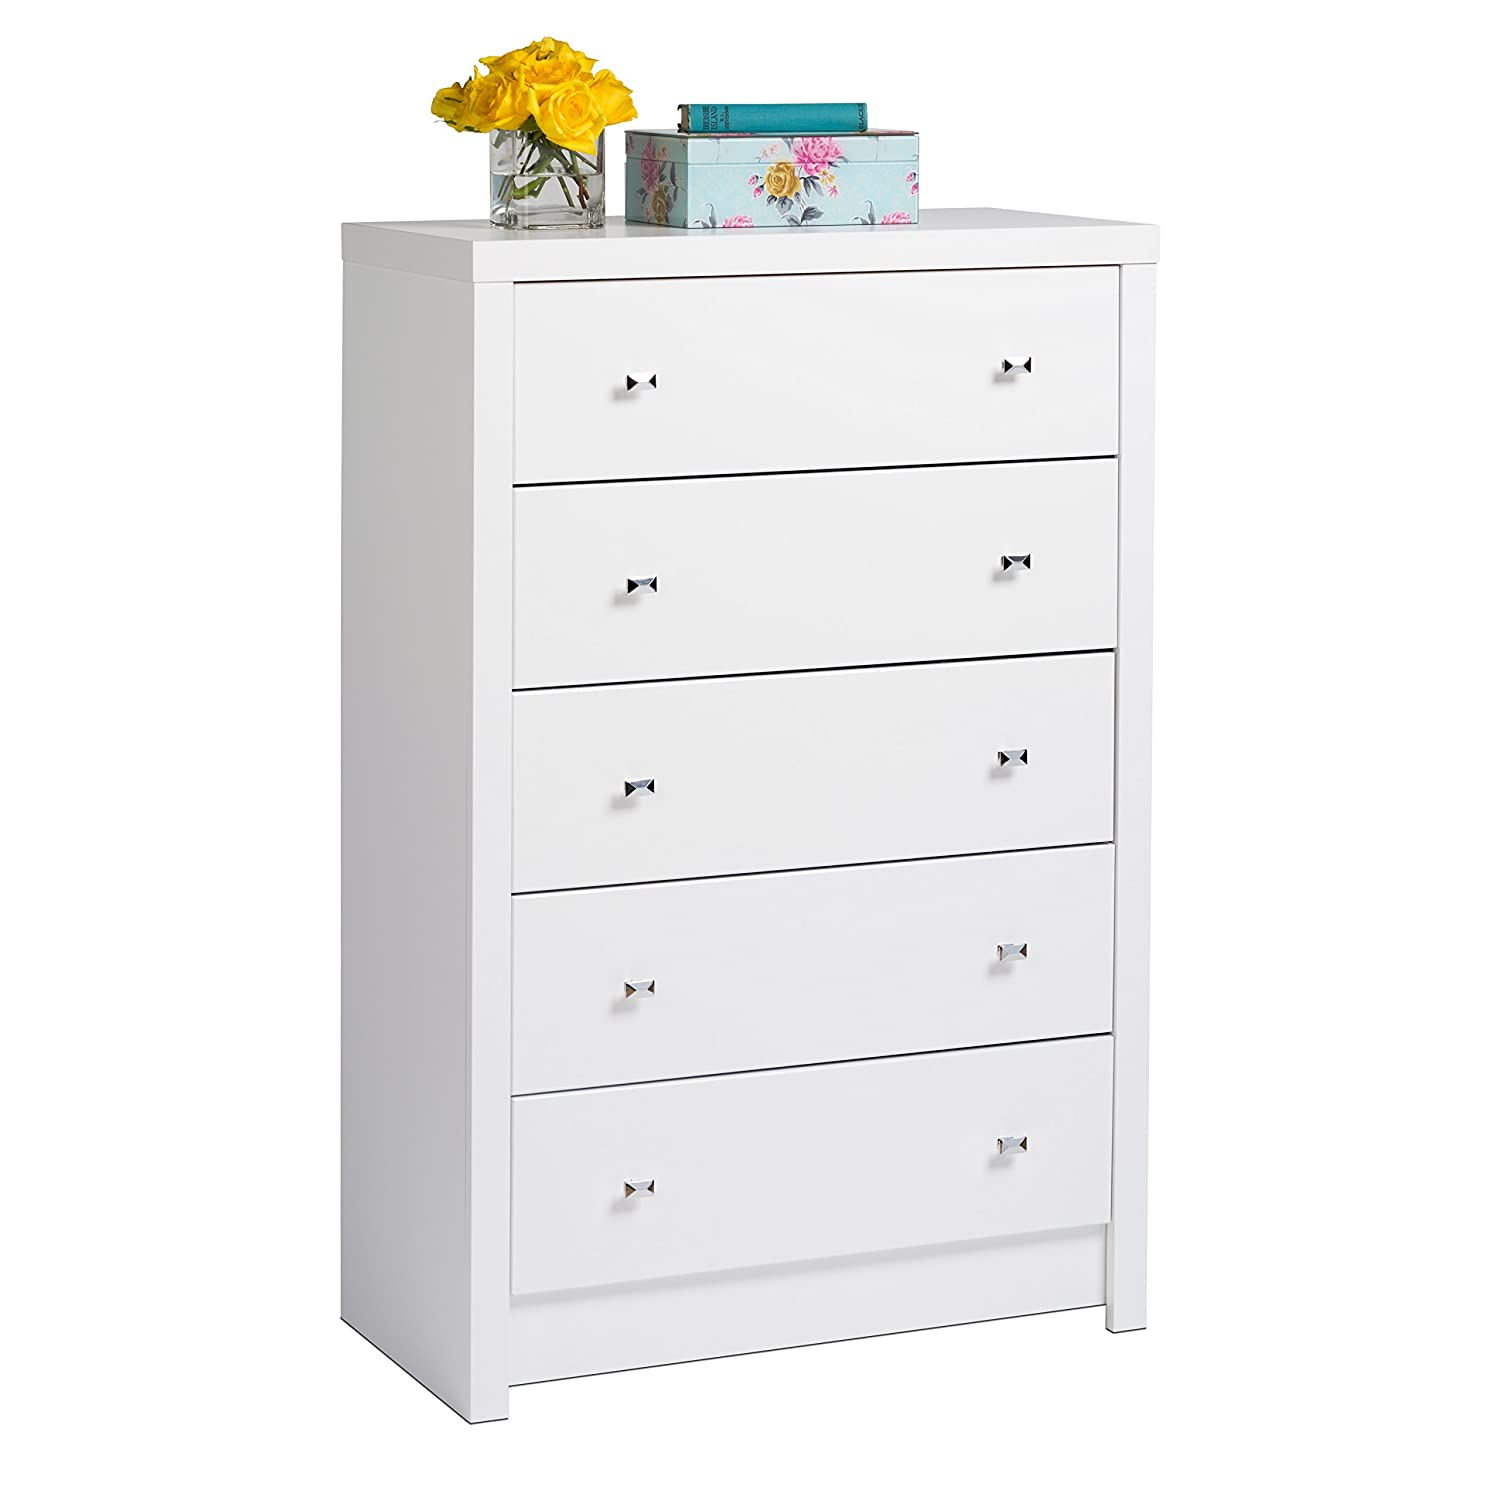 Prepac WDBR-0550-1 Calla 5 Drawer Chest - White